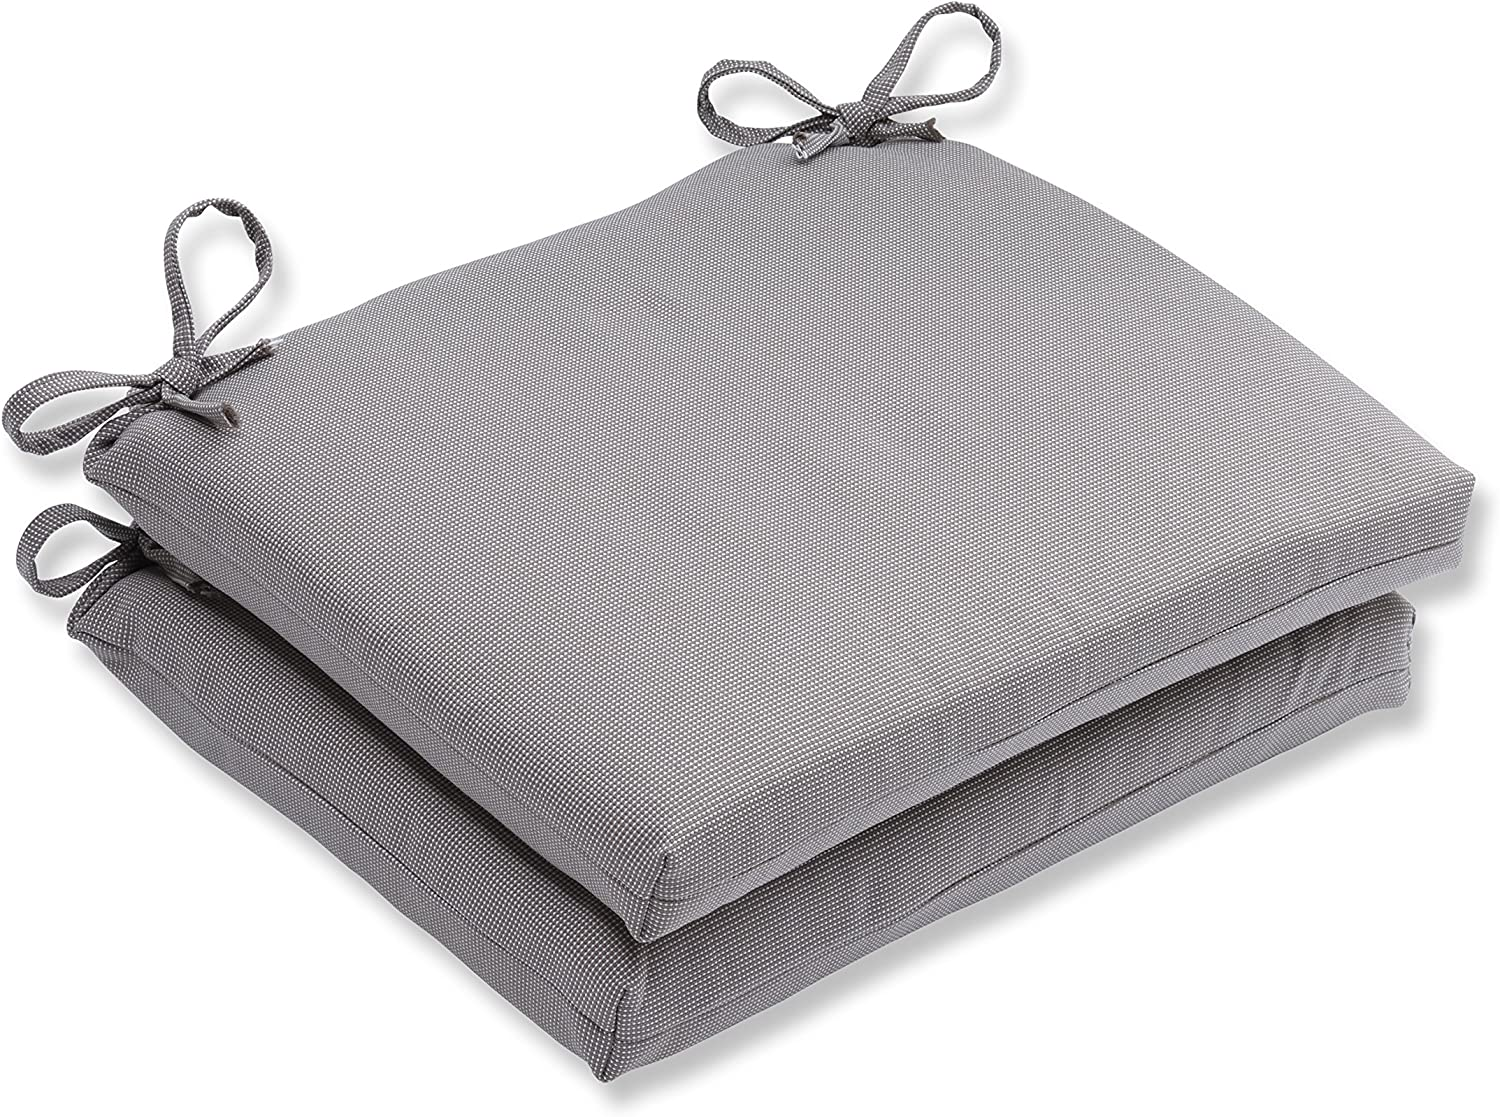 Pillow Perfect Outdoor/Indoor Tweed Squared Corners Seat Cushion (Set of 2), Gray